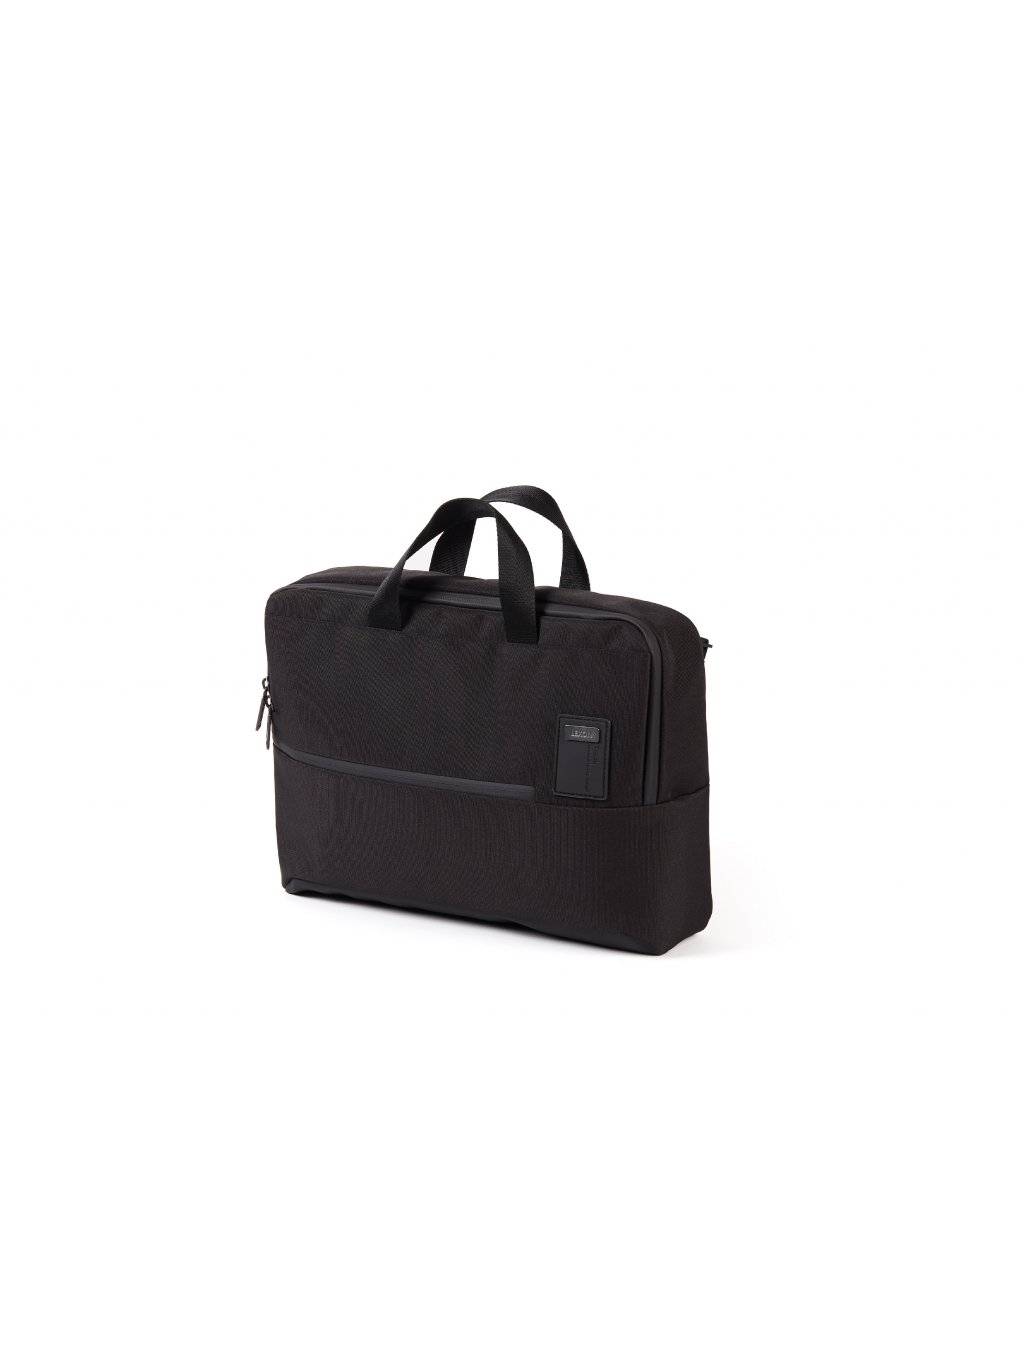 Track 15 document bag LN2406N Black 01